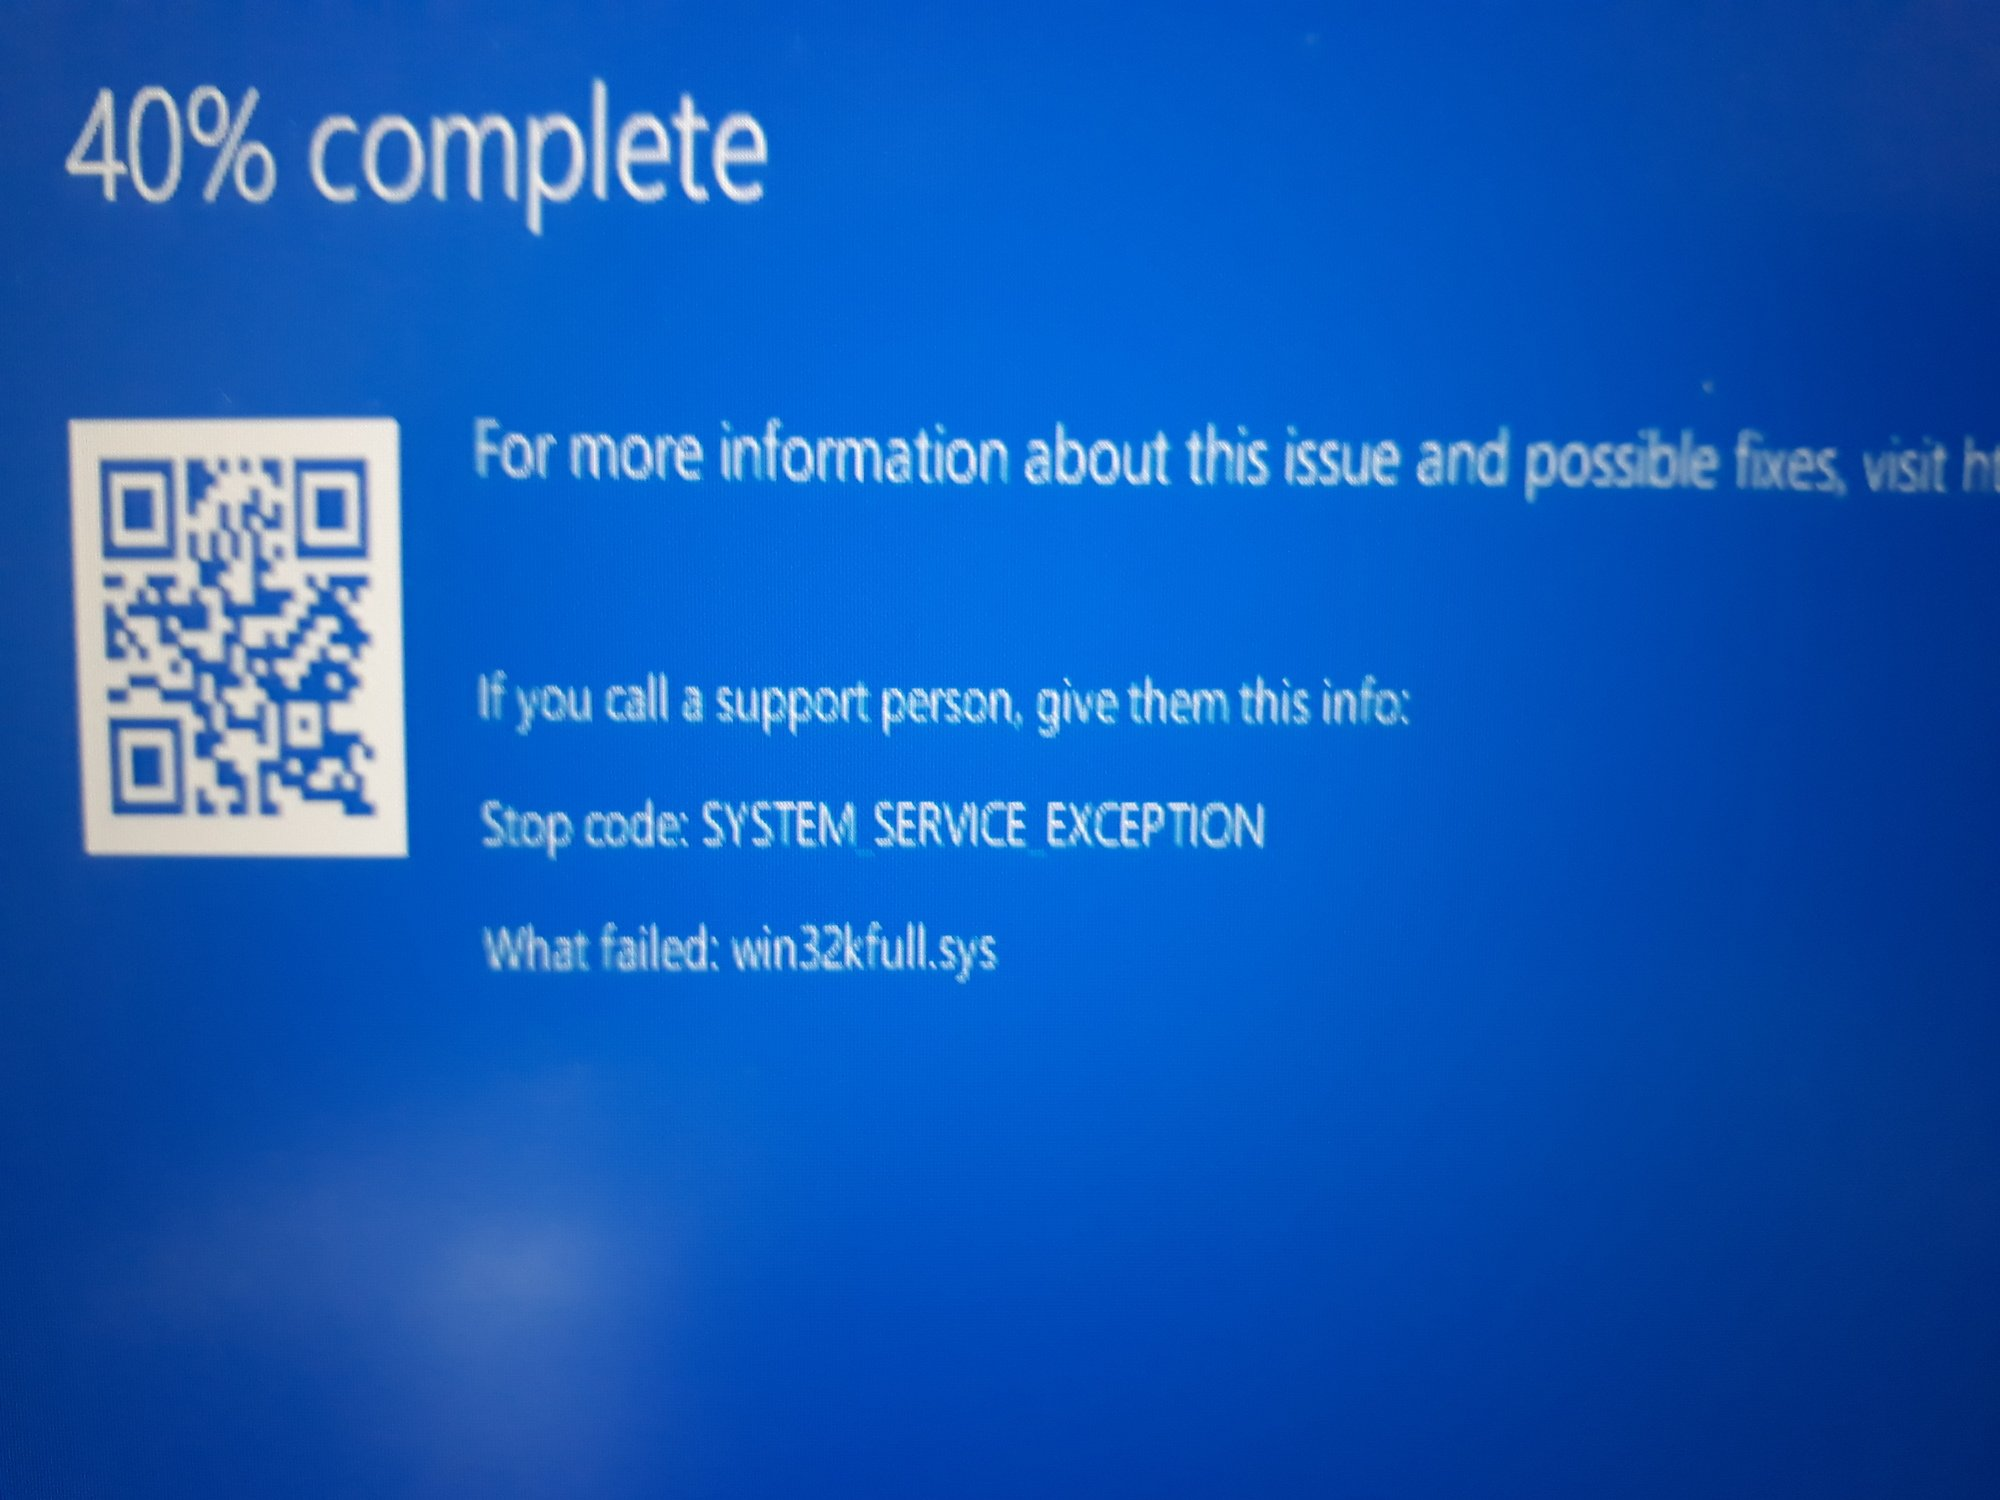 System_Service_Exception win32kfull.sys 3c281301-f480-425d-882b-124eae318a15?upload=true.jpg